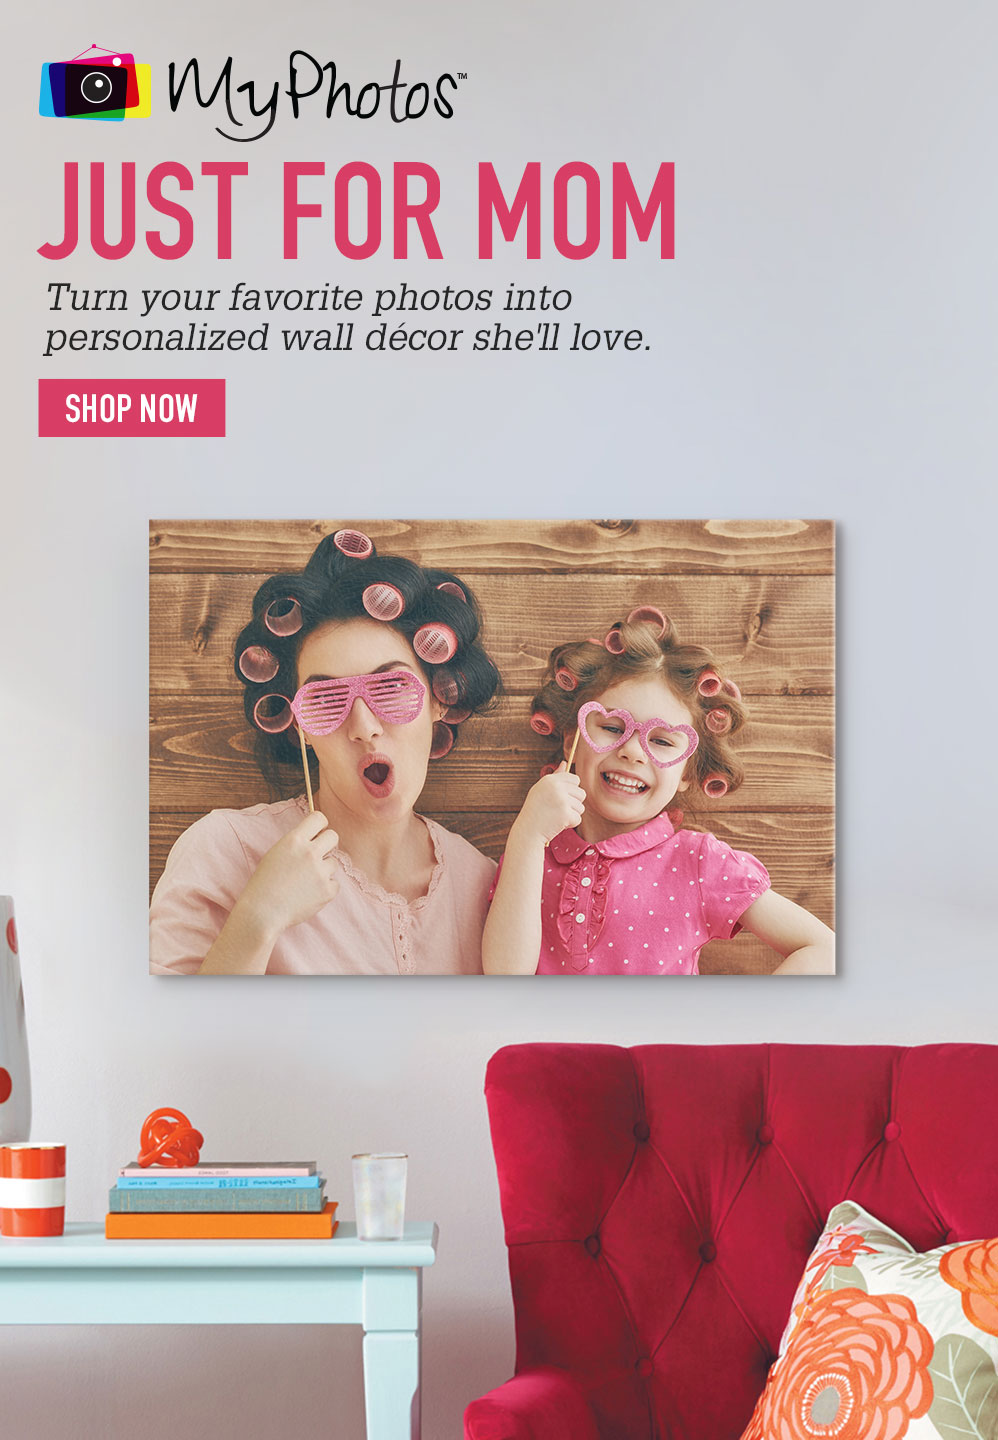 JUST FOR MOM. Turn your favorite photos into personalized wall décor she'll love. SHOP NOW